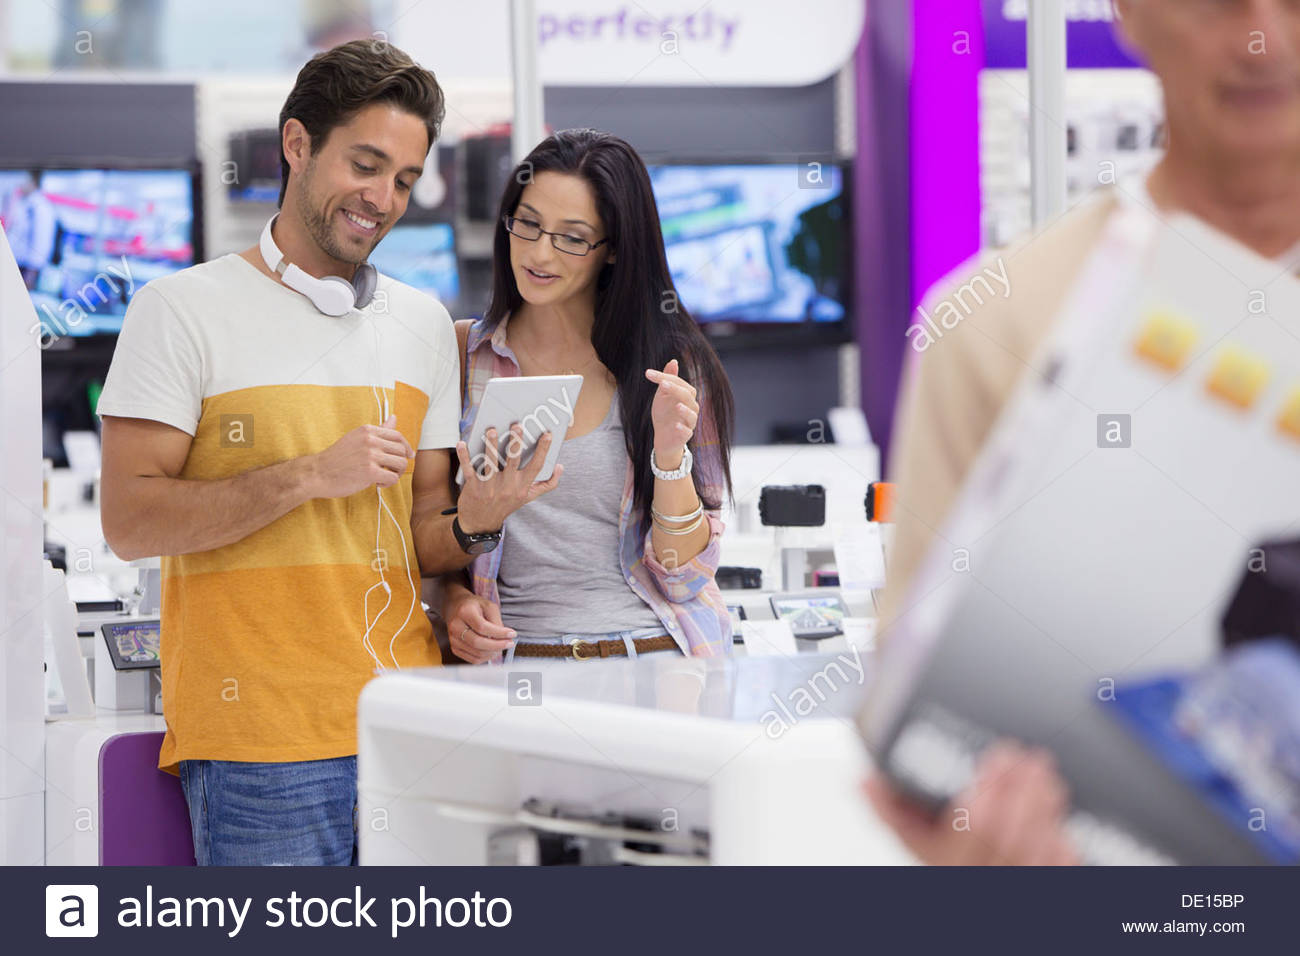 Couple looking at digital tablet in electronics store - Stock Image